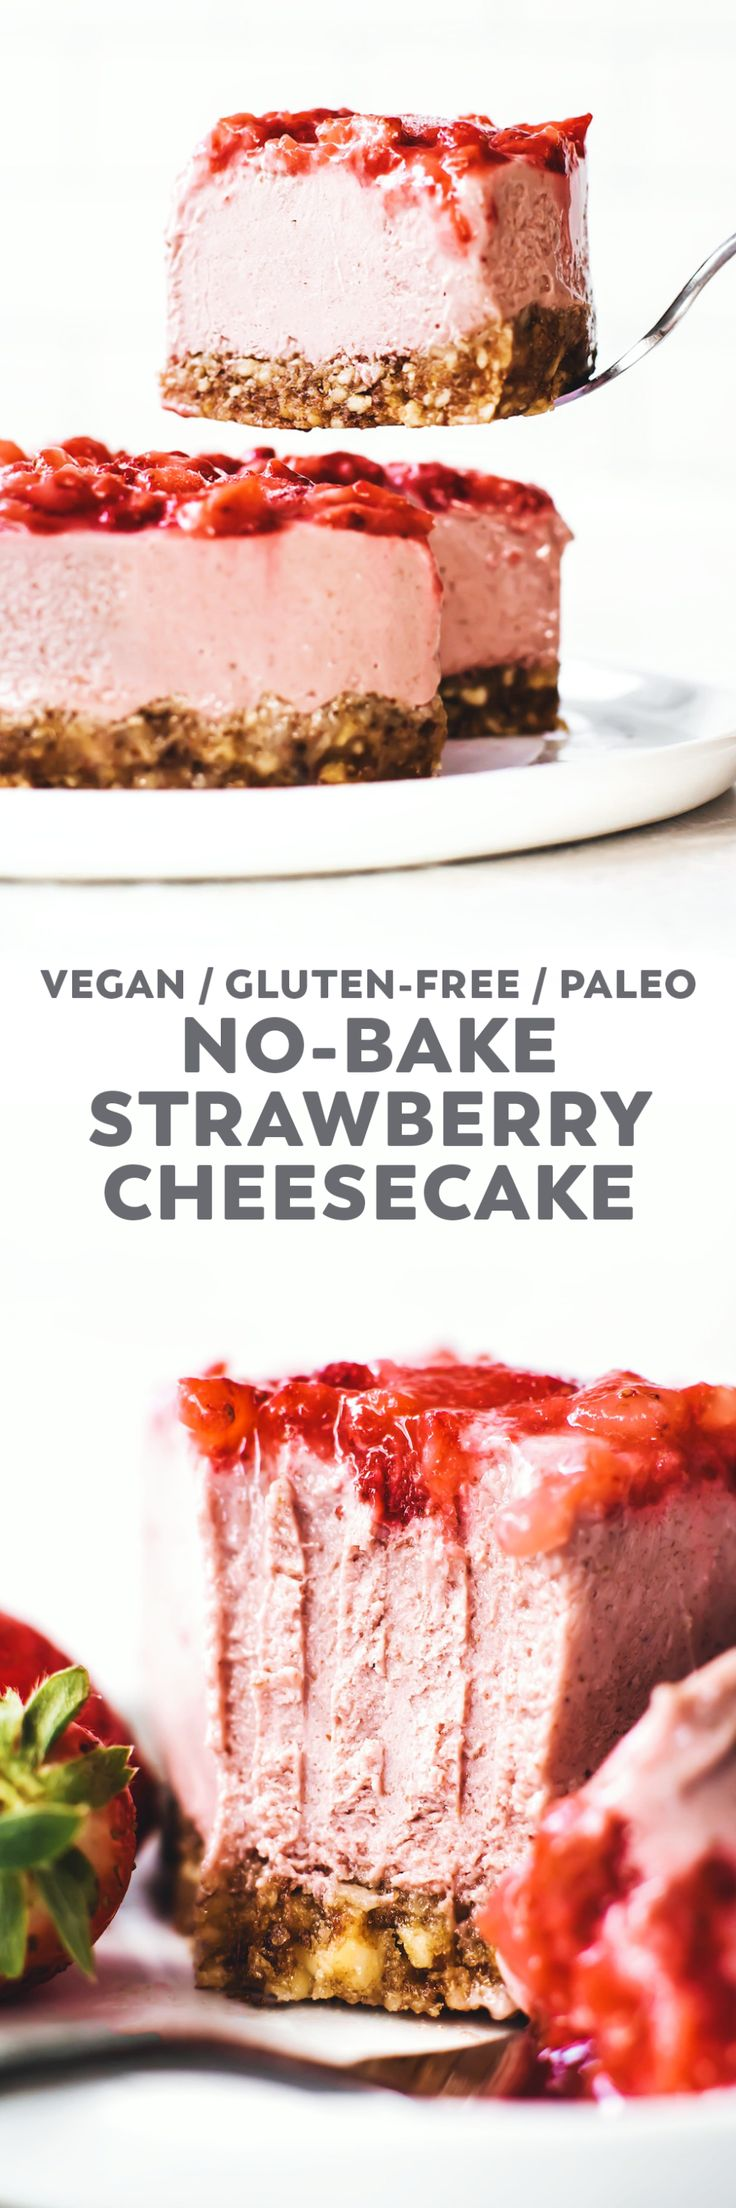 No-Bake Strawberry Cheesecake! Made with fresh berries, cashew butter, dates, and an easy almond crust. Creamy, dreamy, and actually pretty healthy...for cake. #vegan #glutenfree #paleo #recipe #cheesecake #healthyrecipe